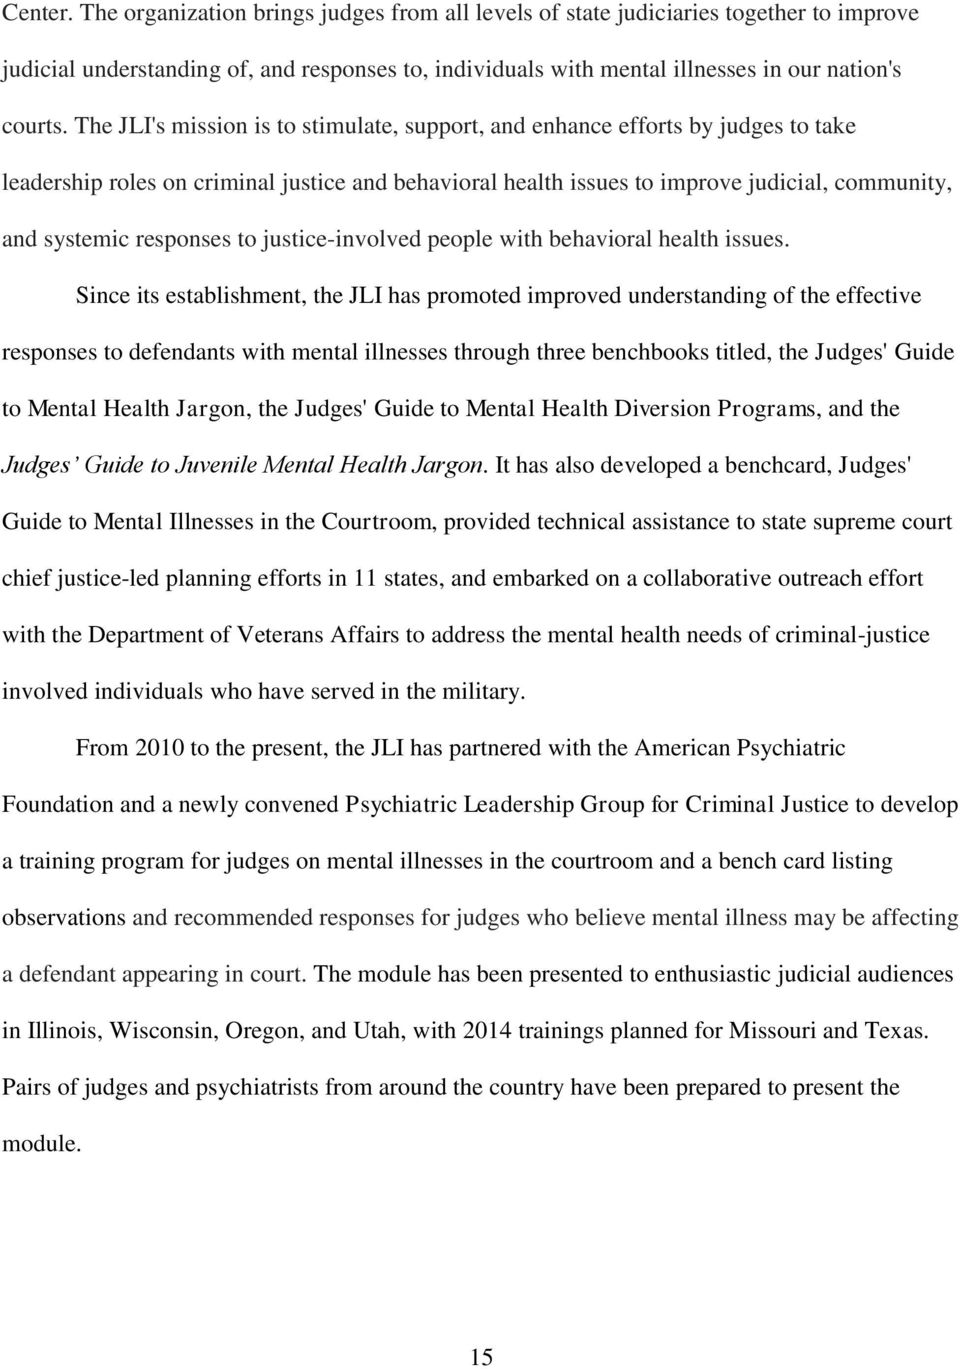 responses to justice-involved people with behavioral health issues.